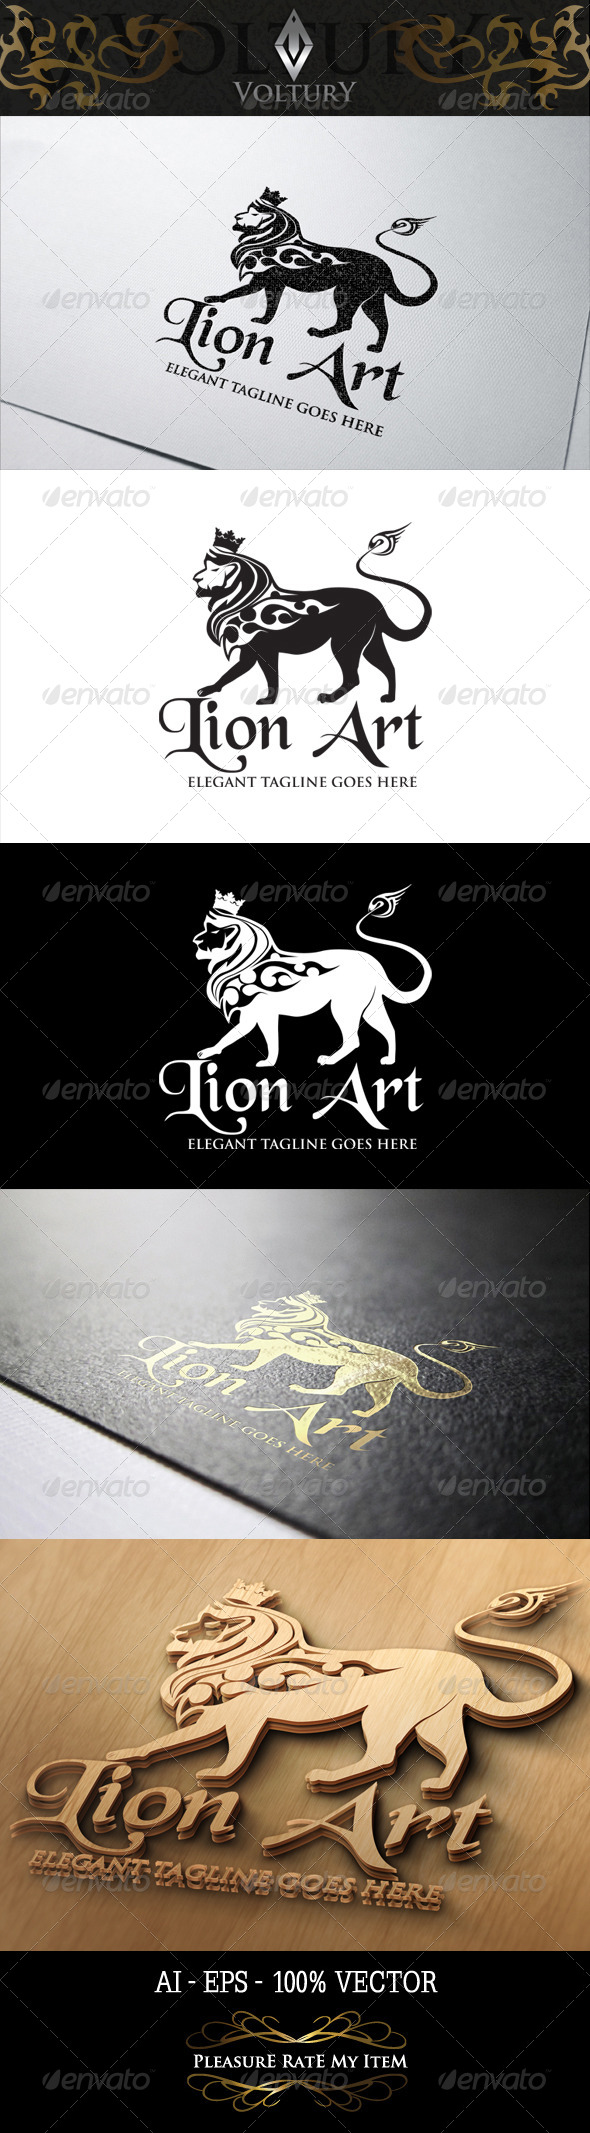 GraphicRiver Lion Art Logo 8466535